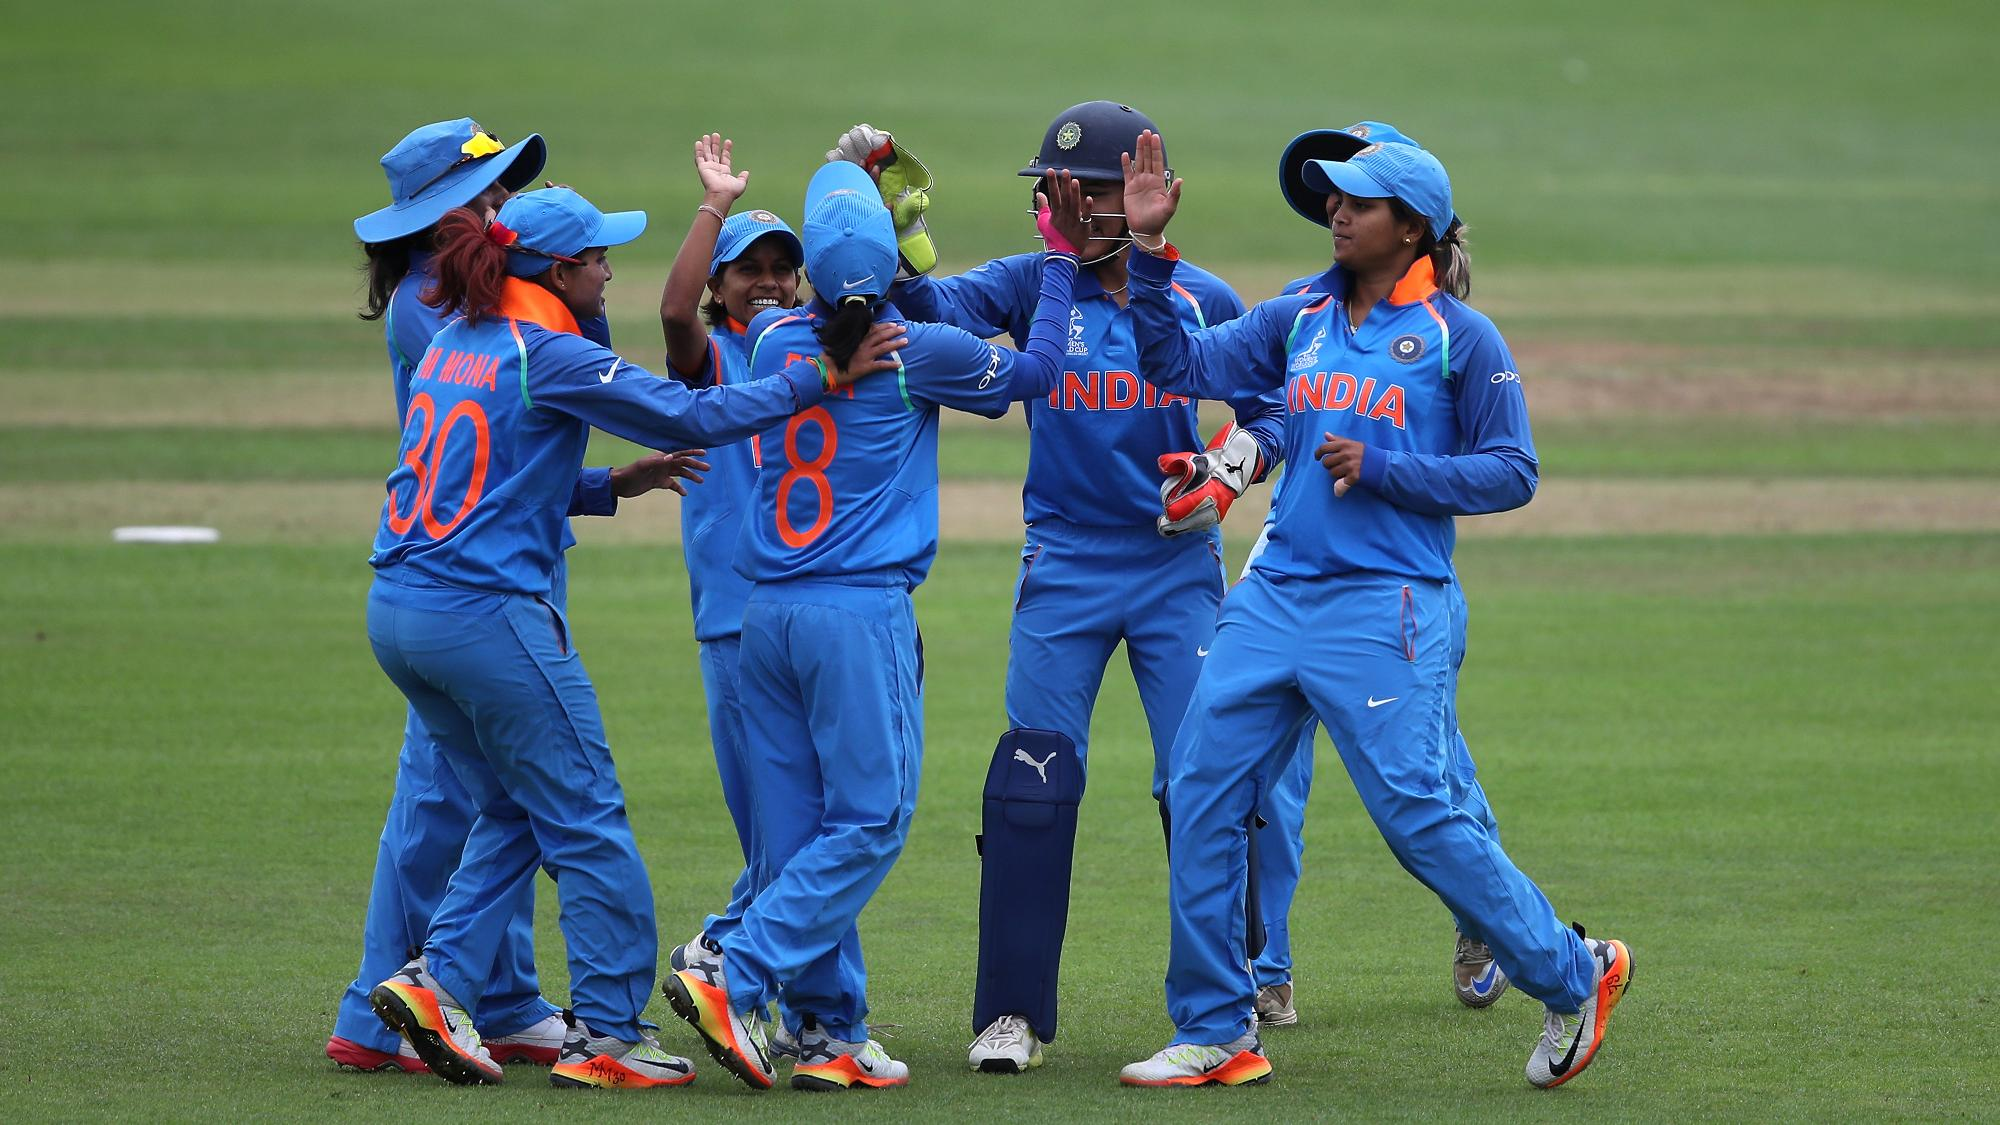 BCCI announces squads for one-off Women's T20 Challenge match